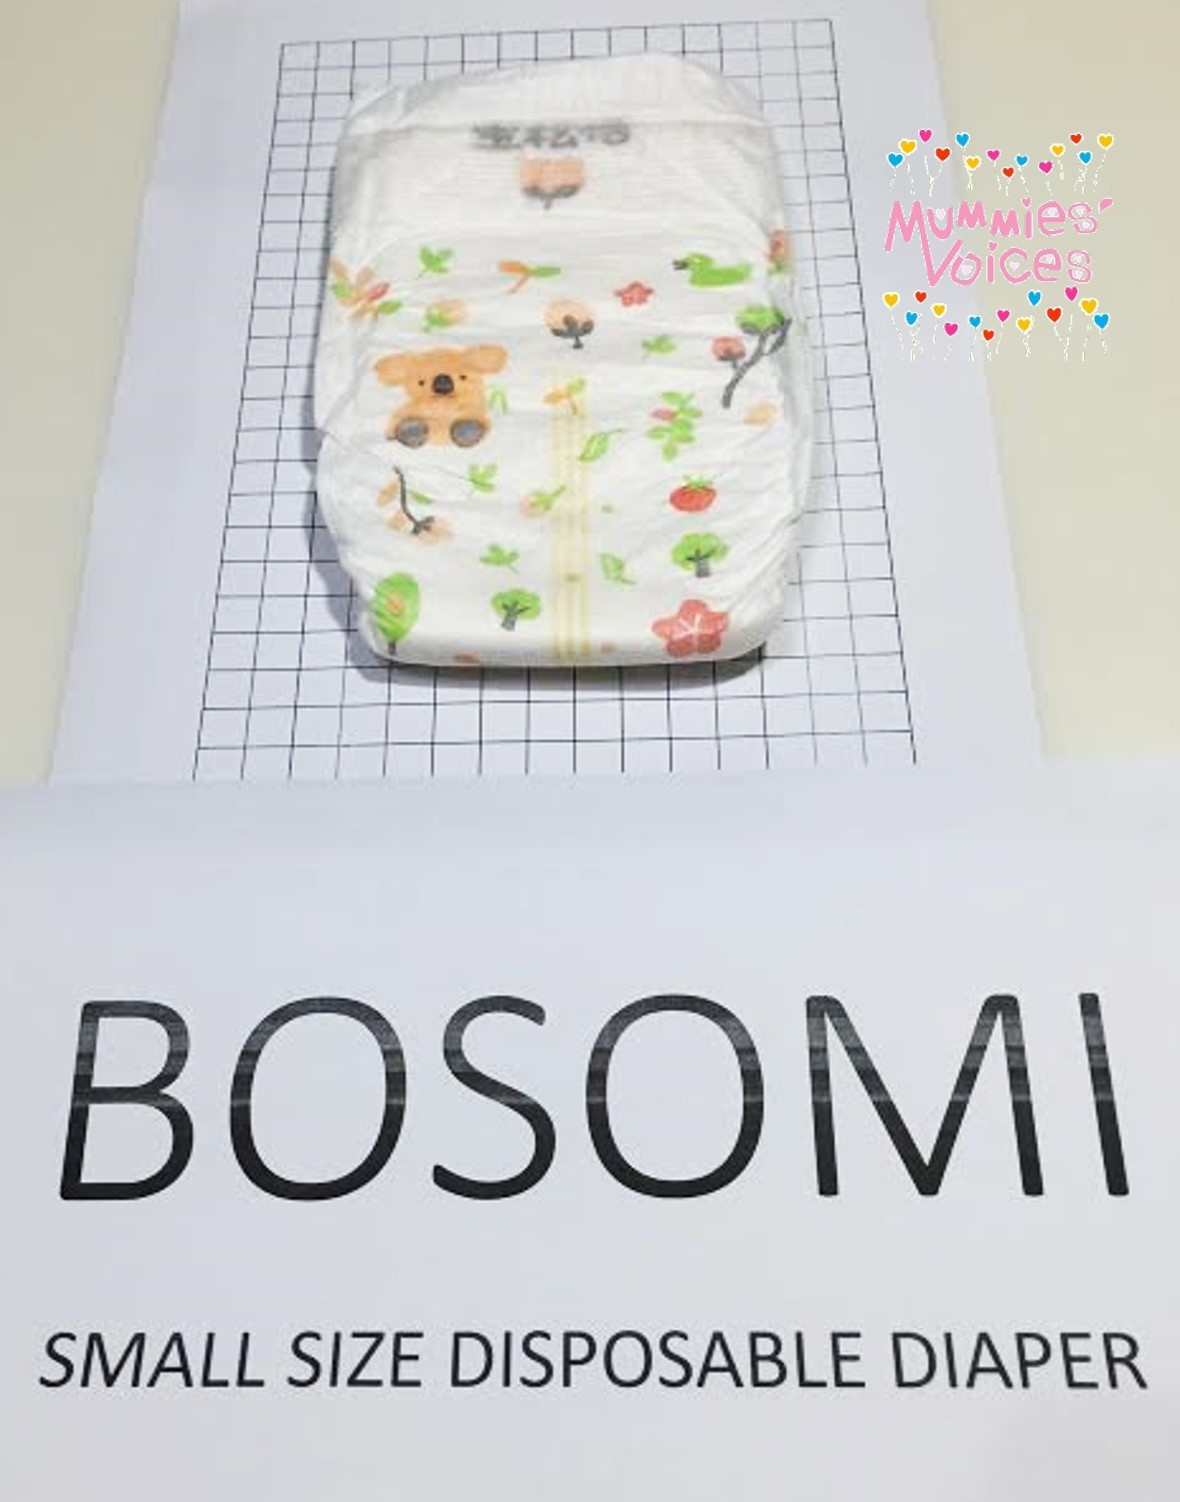 Review The Diaper Challenge 14 Brands Of Small Size Disposable Merries Baby Diapers New Born 24 S Bosomi Very Soft And Comfy Cutting Is Not As Big But Like Pureen It Starting To Get A Little Snug For Meimei Now